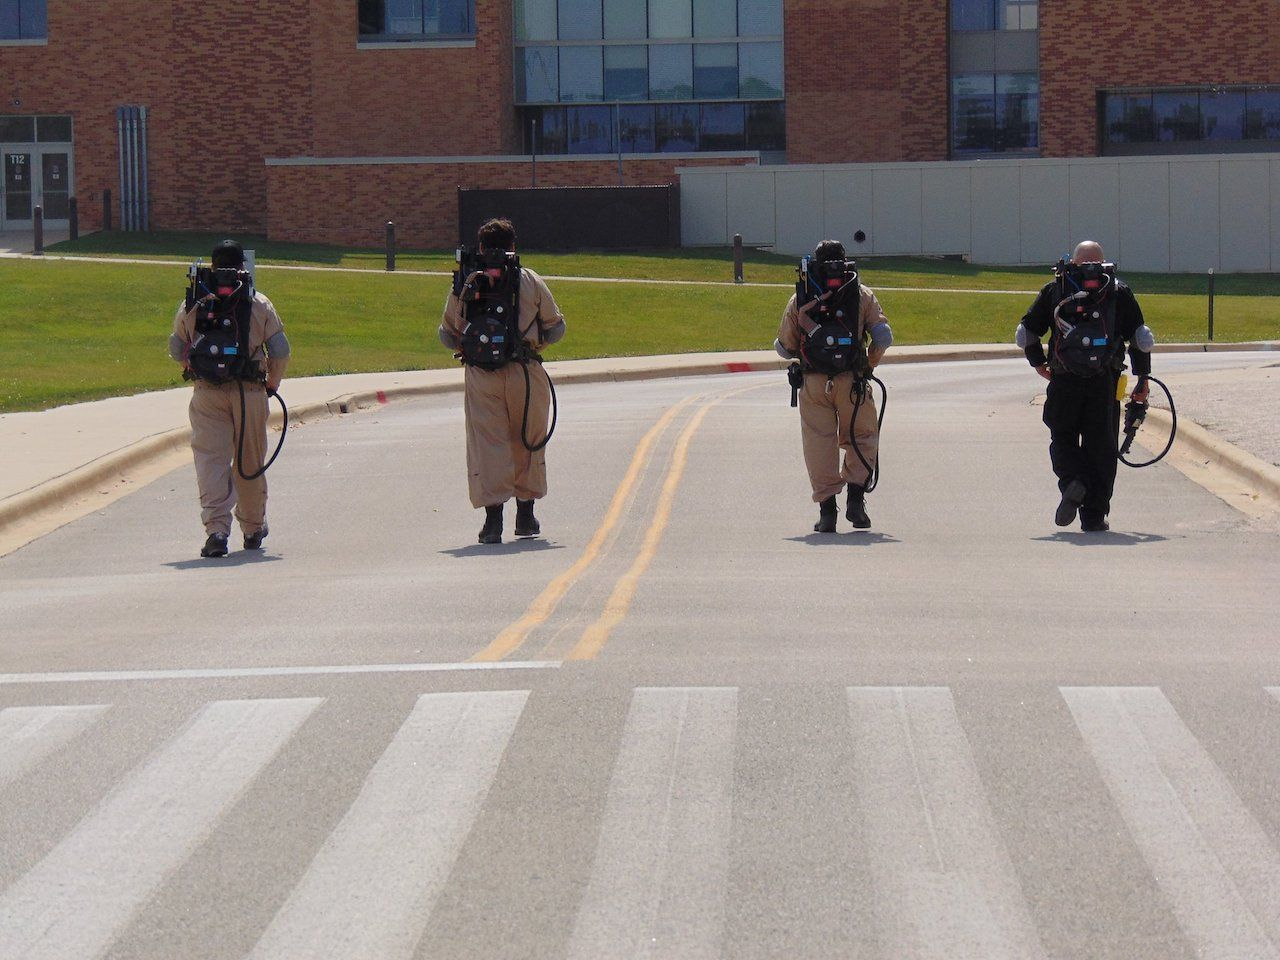 Four ghostbusters walk down an empty road on the Great Lake County Ghost Adventure in Illinois